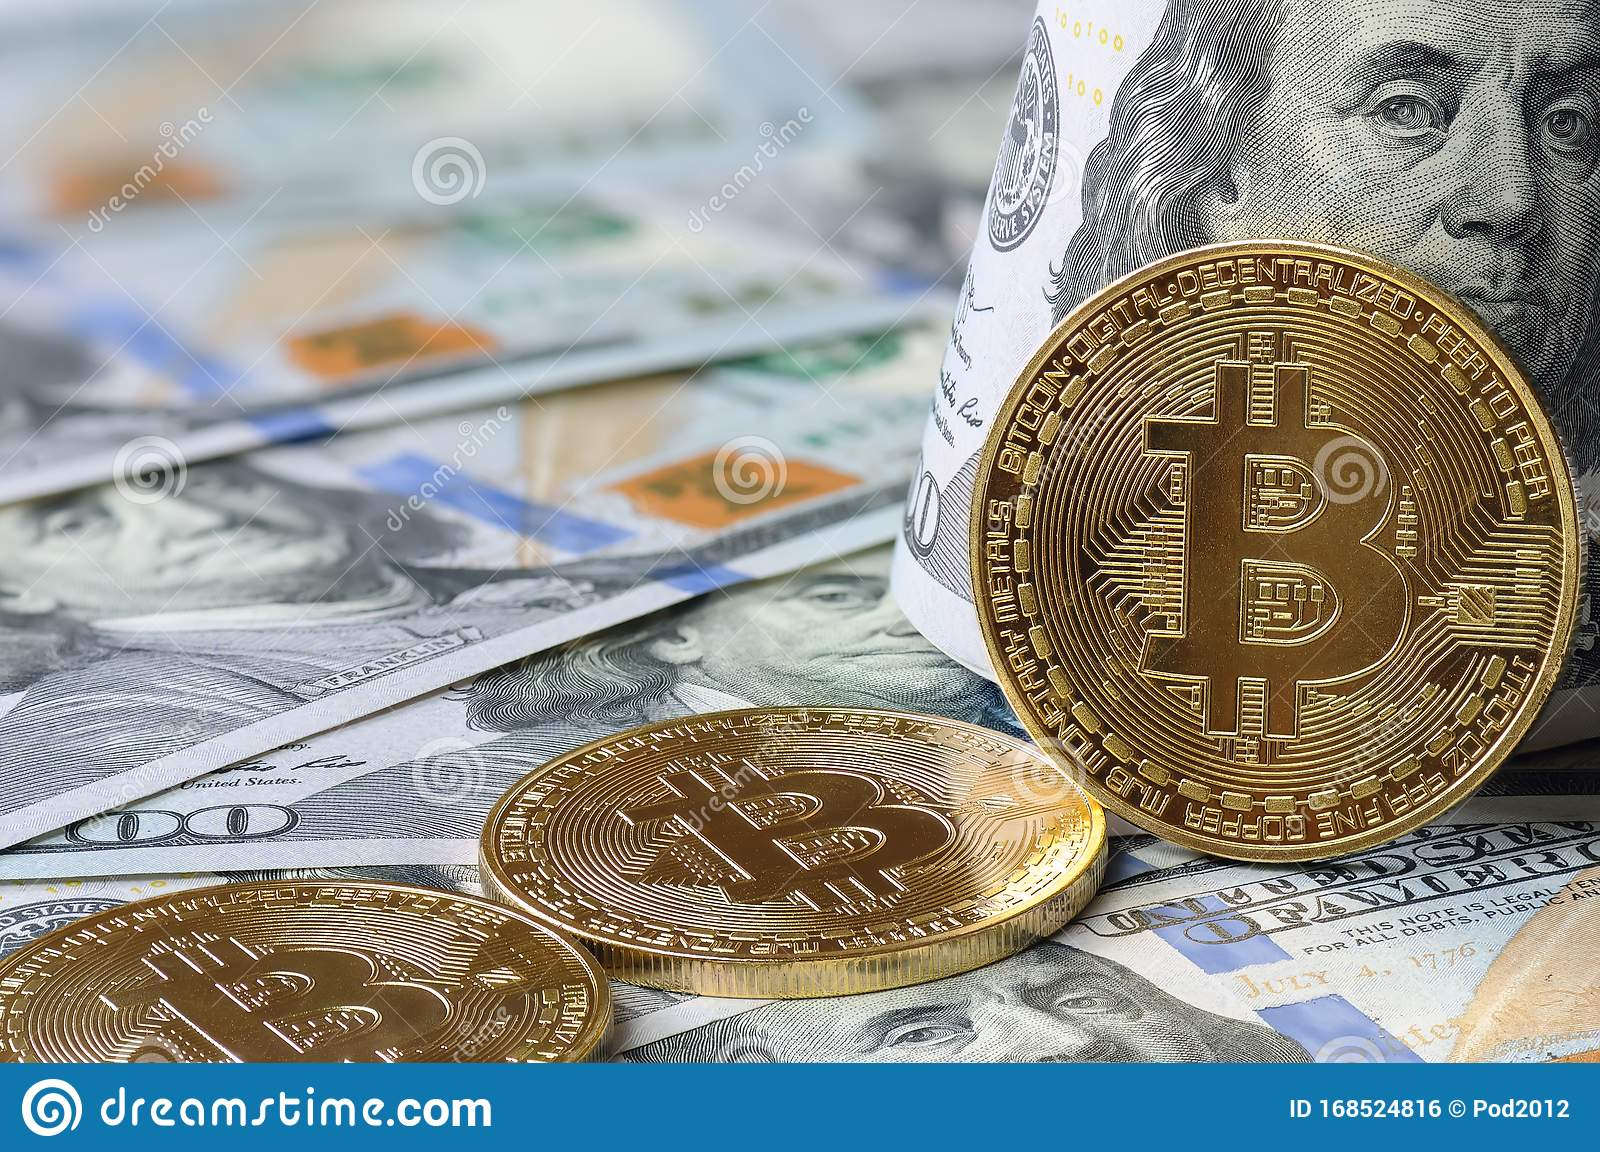 BTC/USD Live Chart | Bitcoin/US Dollar Real Time Rate on Forex